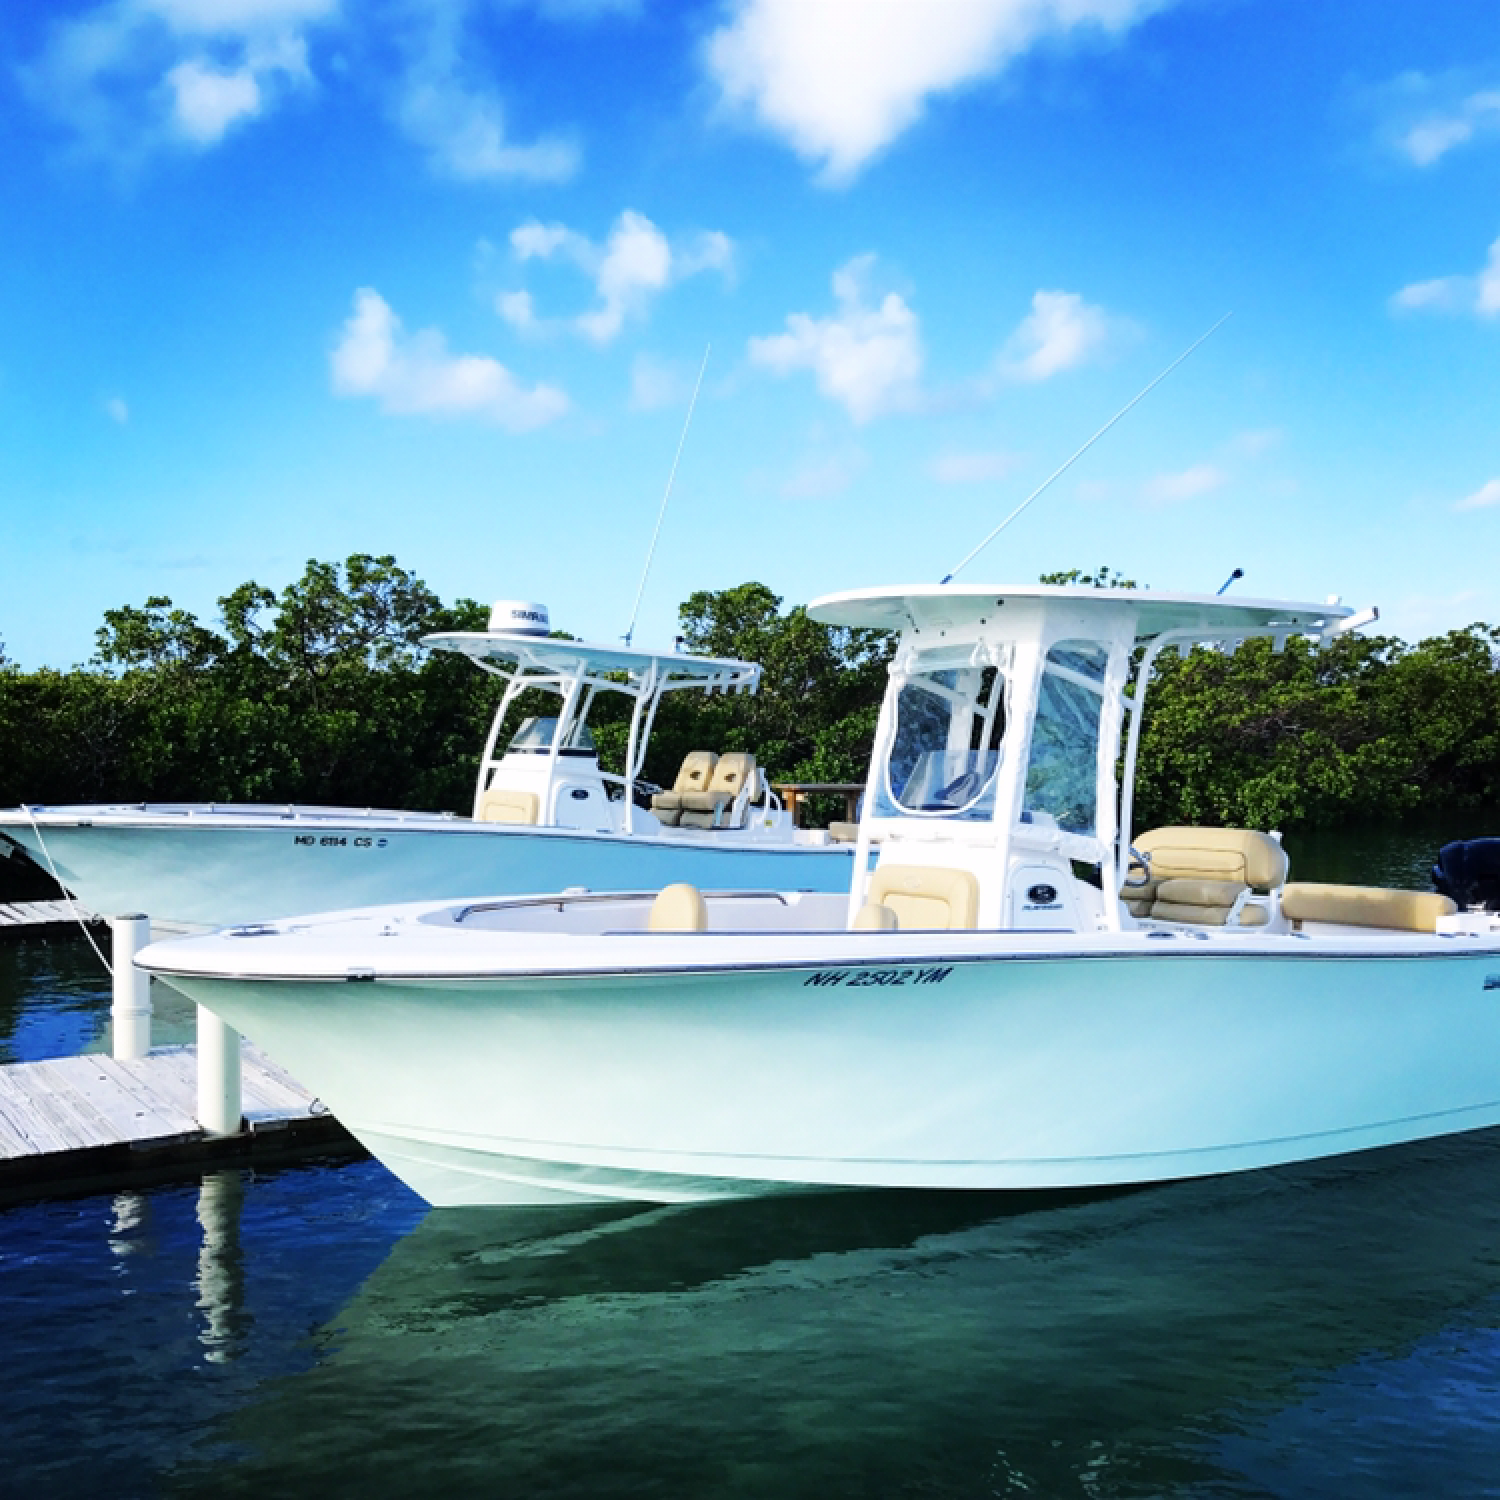 Title: Matching 232 and 282  (Long Island Bahamas) - On board their Sportsman Open 232 Center Console - Location: Long Island, Bahamas. Participating in the Photo Contest #SportsmanMarch2018